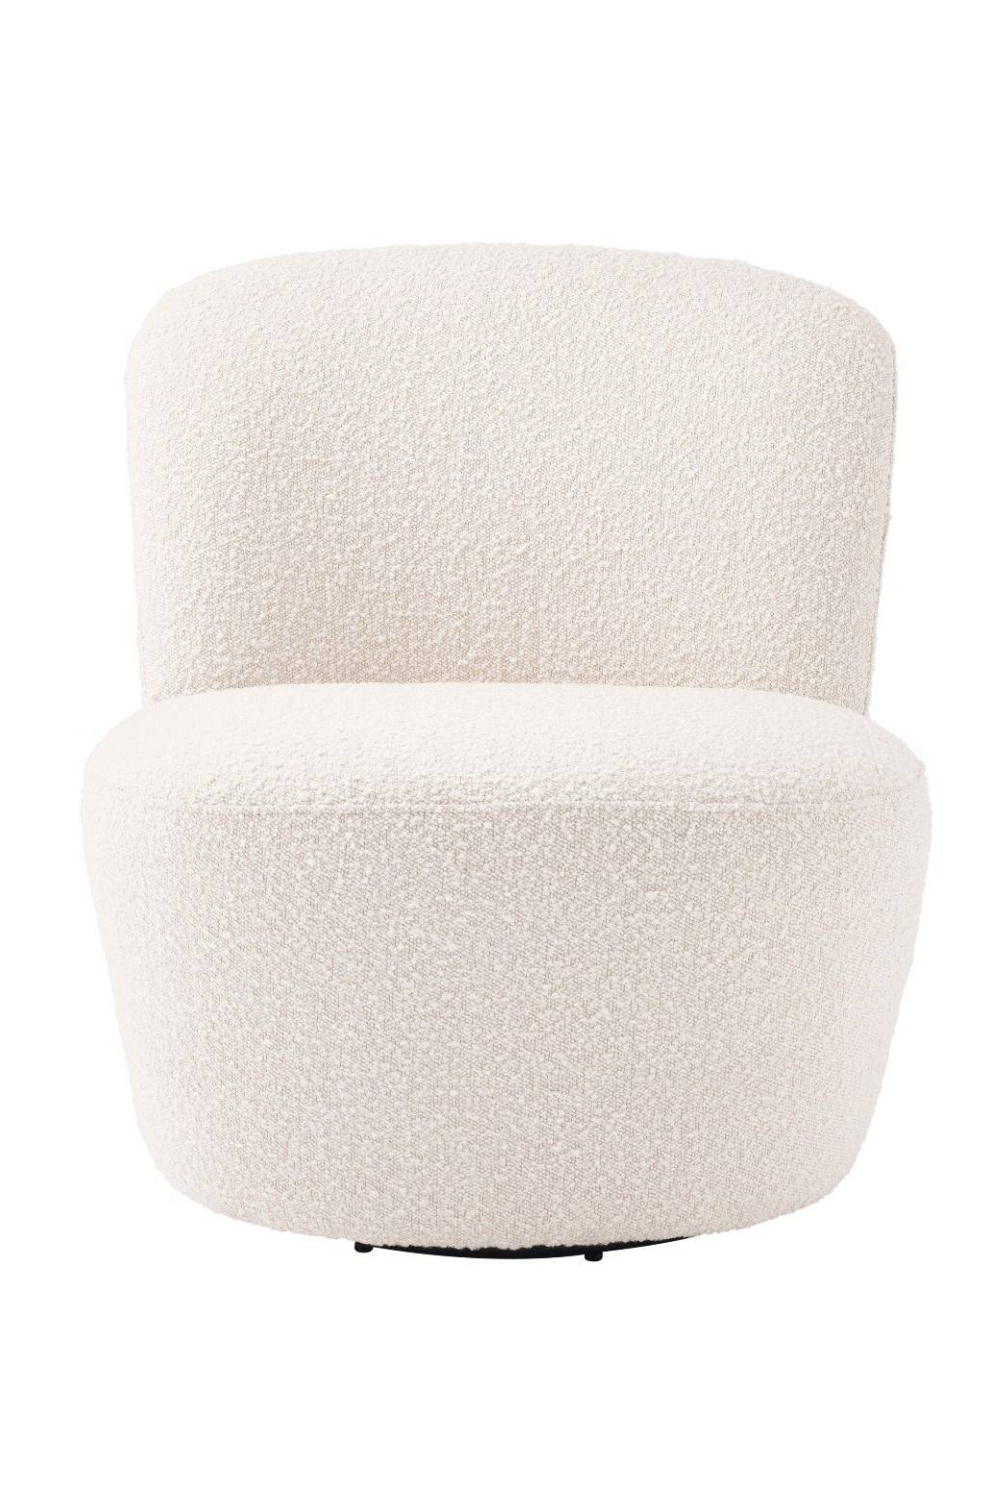 White Domed Back Swivel Chair | Eichholz Doria | OROA Luxury Furniture